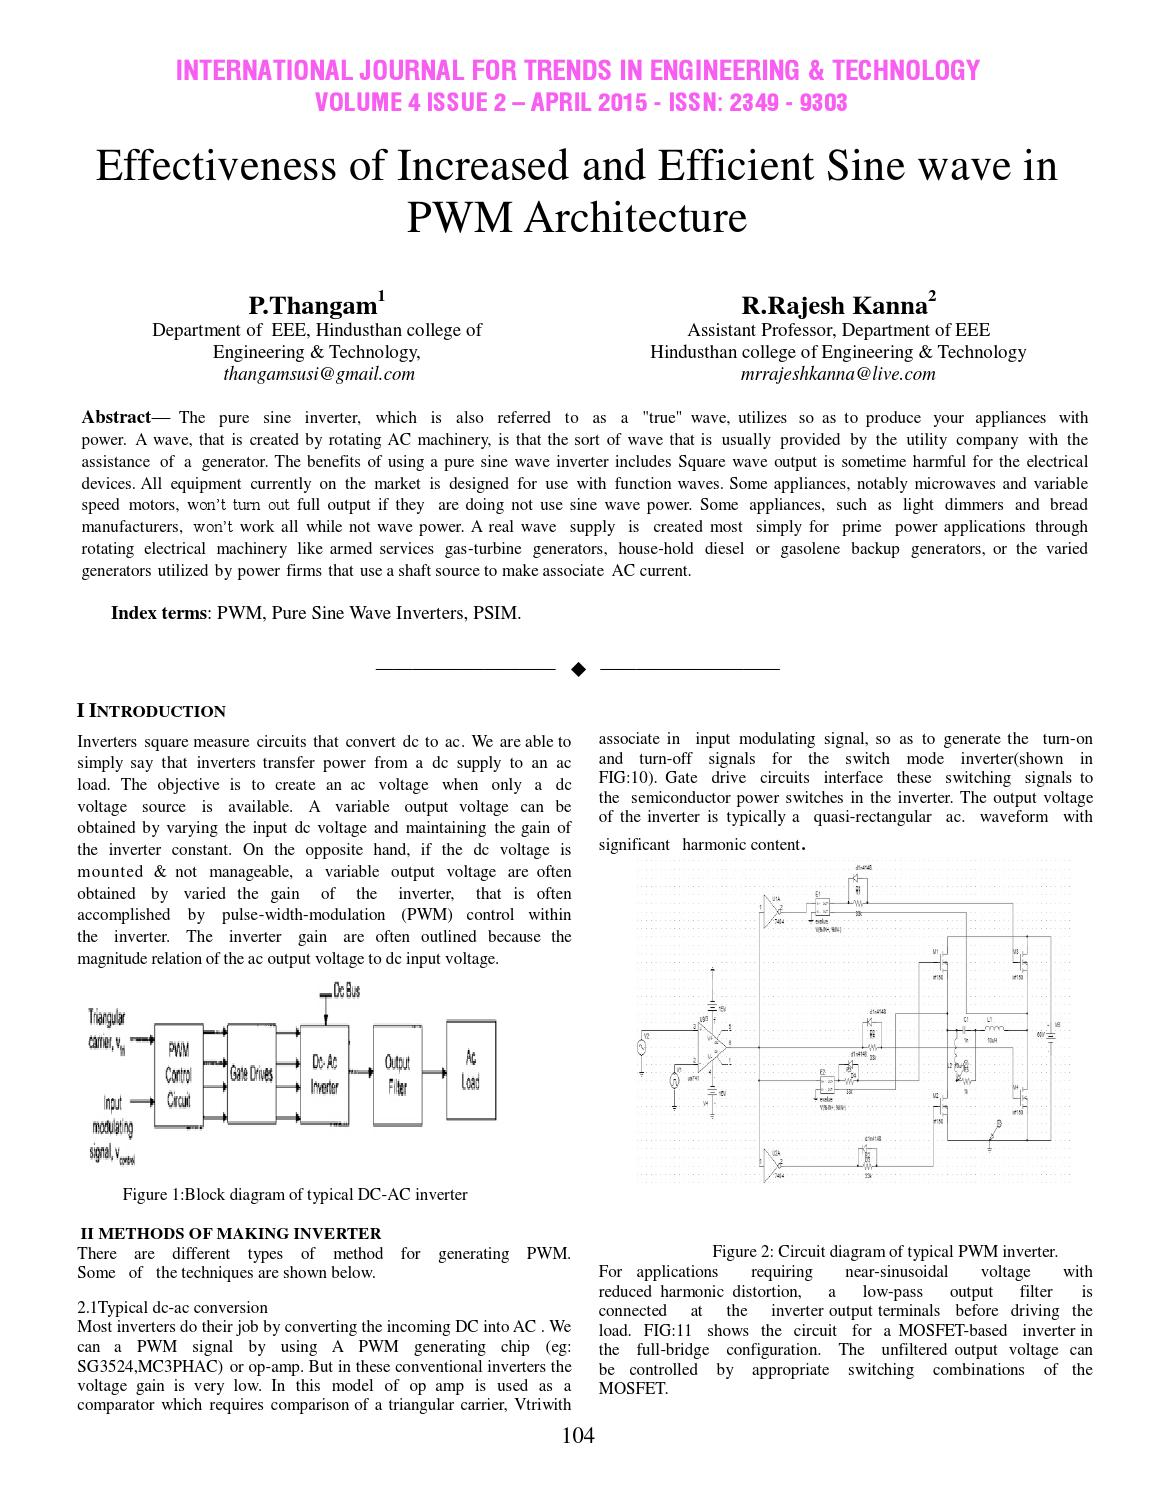 Effectiveness of Increased and Efficient Sine wave in PWM